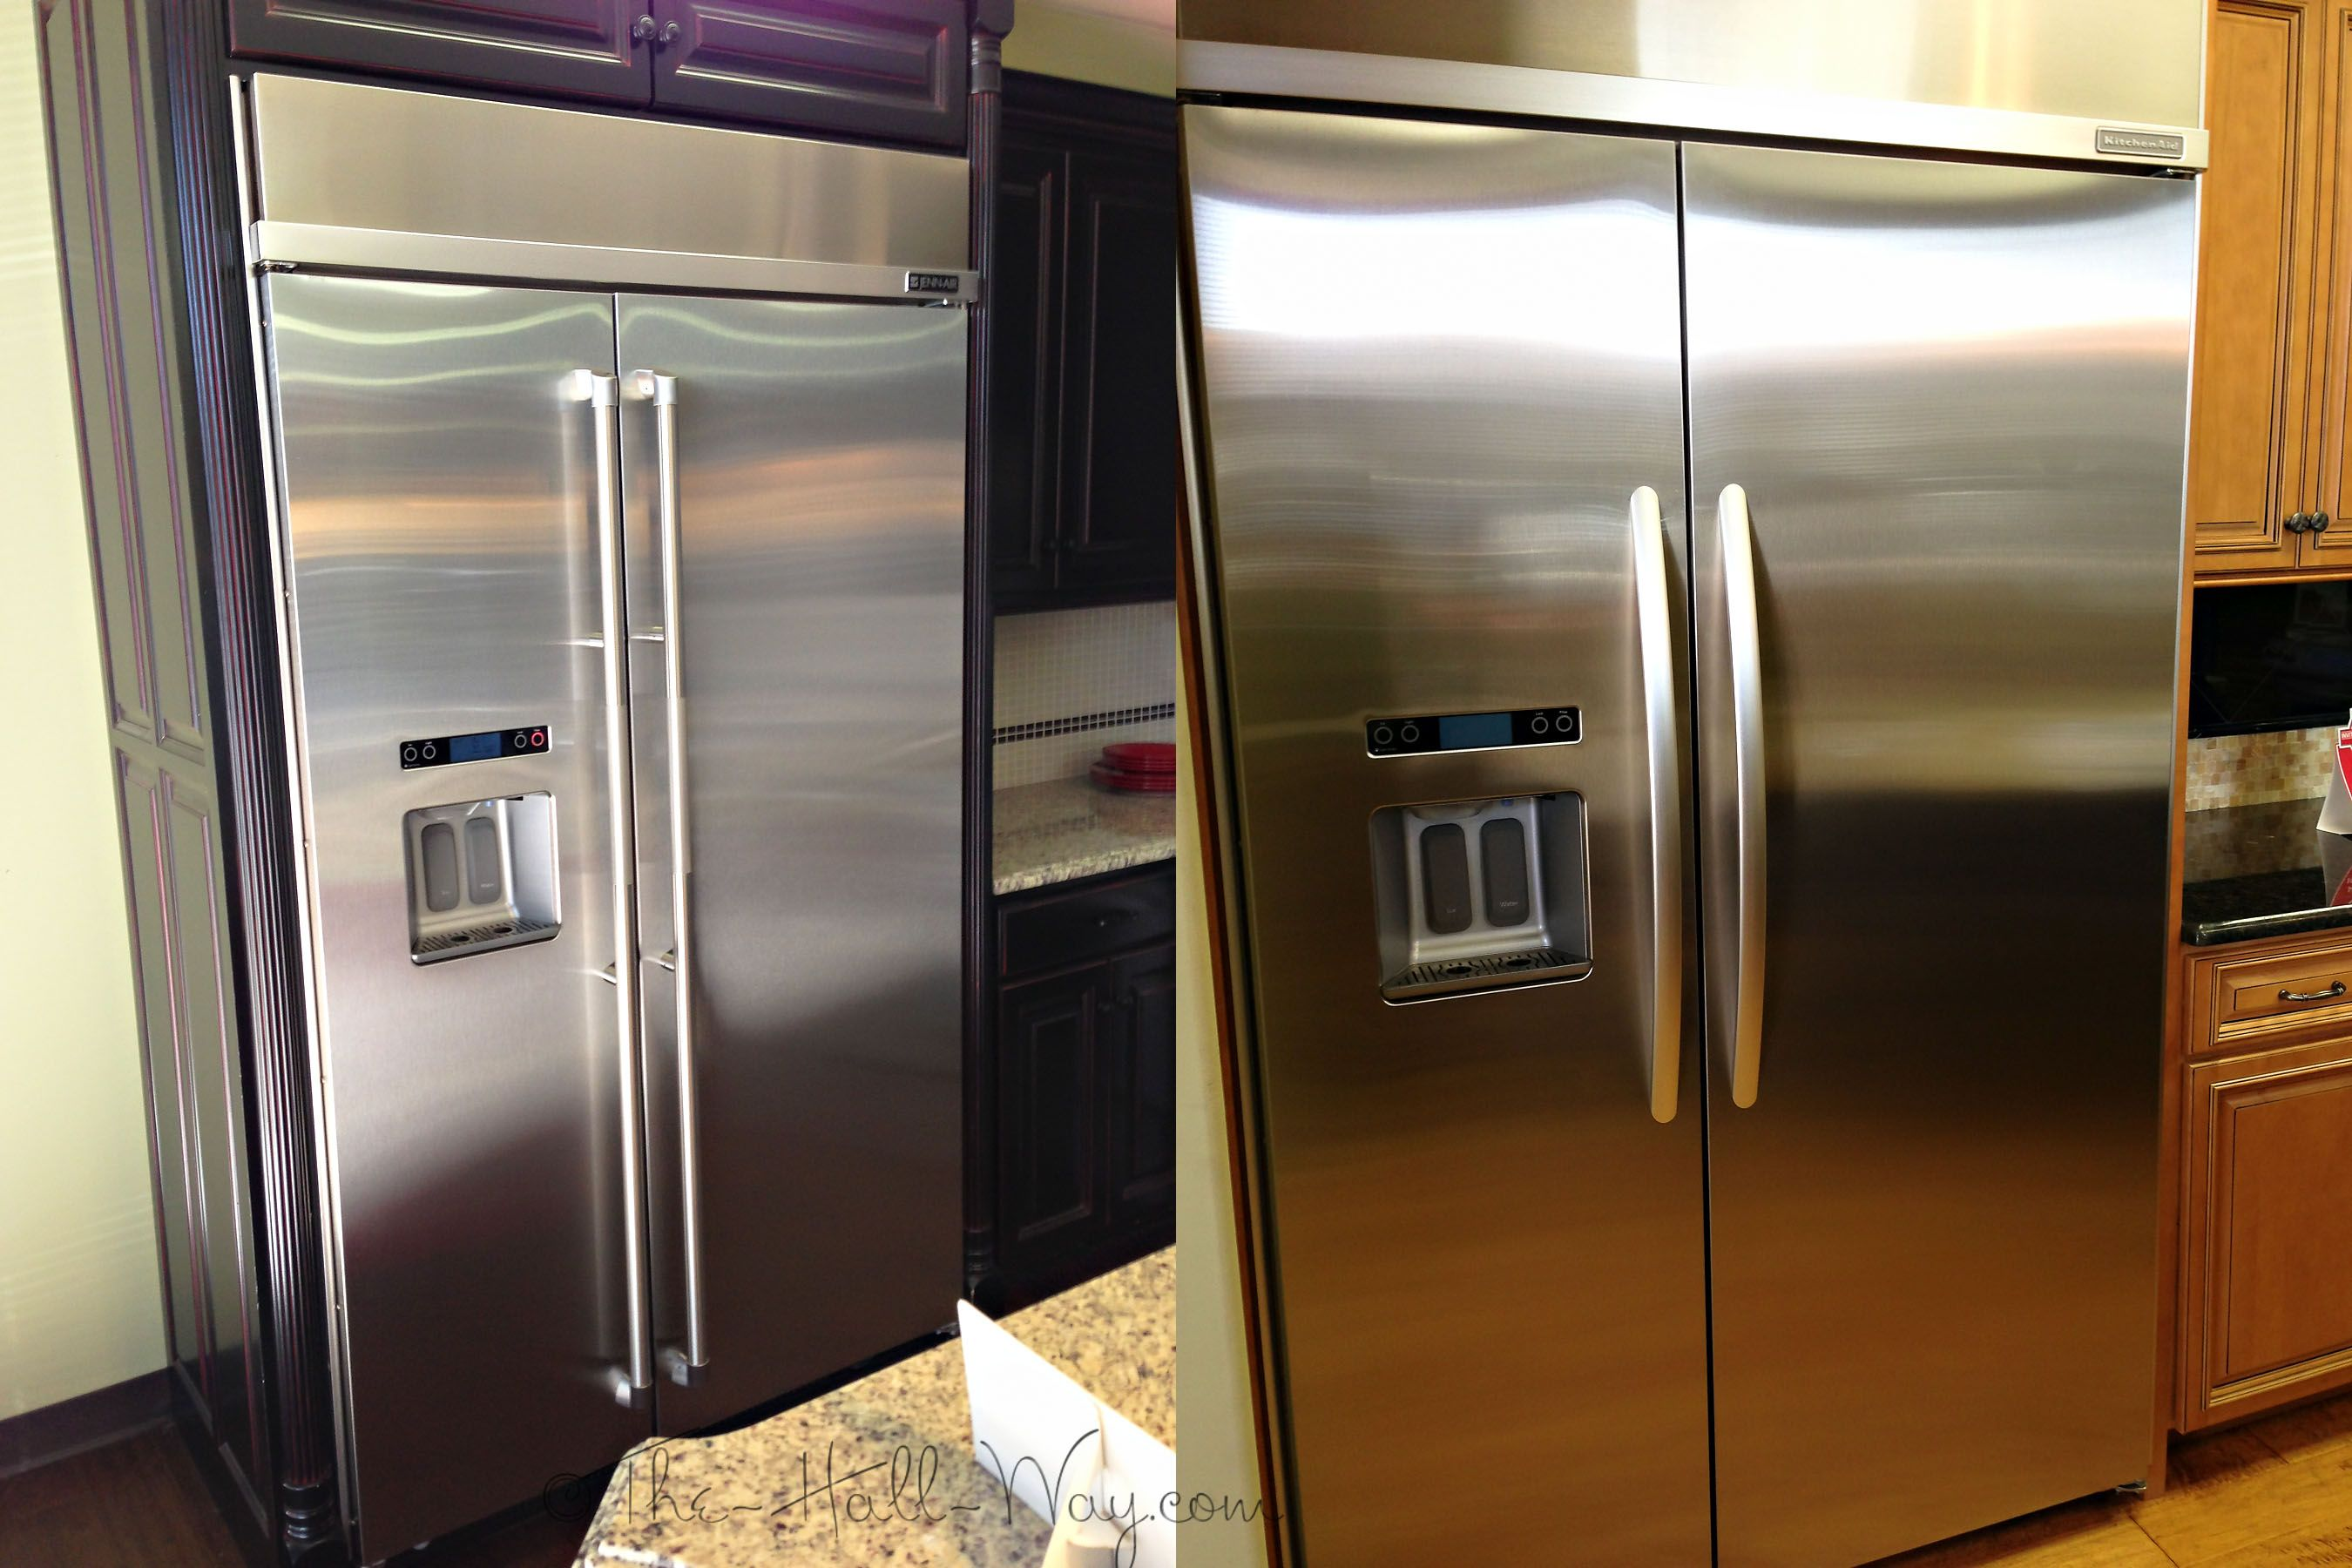 Exceptionnel Jenn Air Vs Kitchenaid Fridge #appliances #JennAir